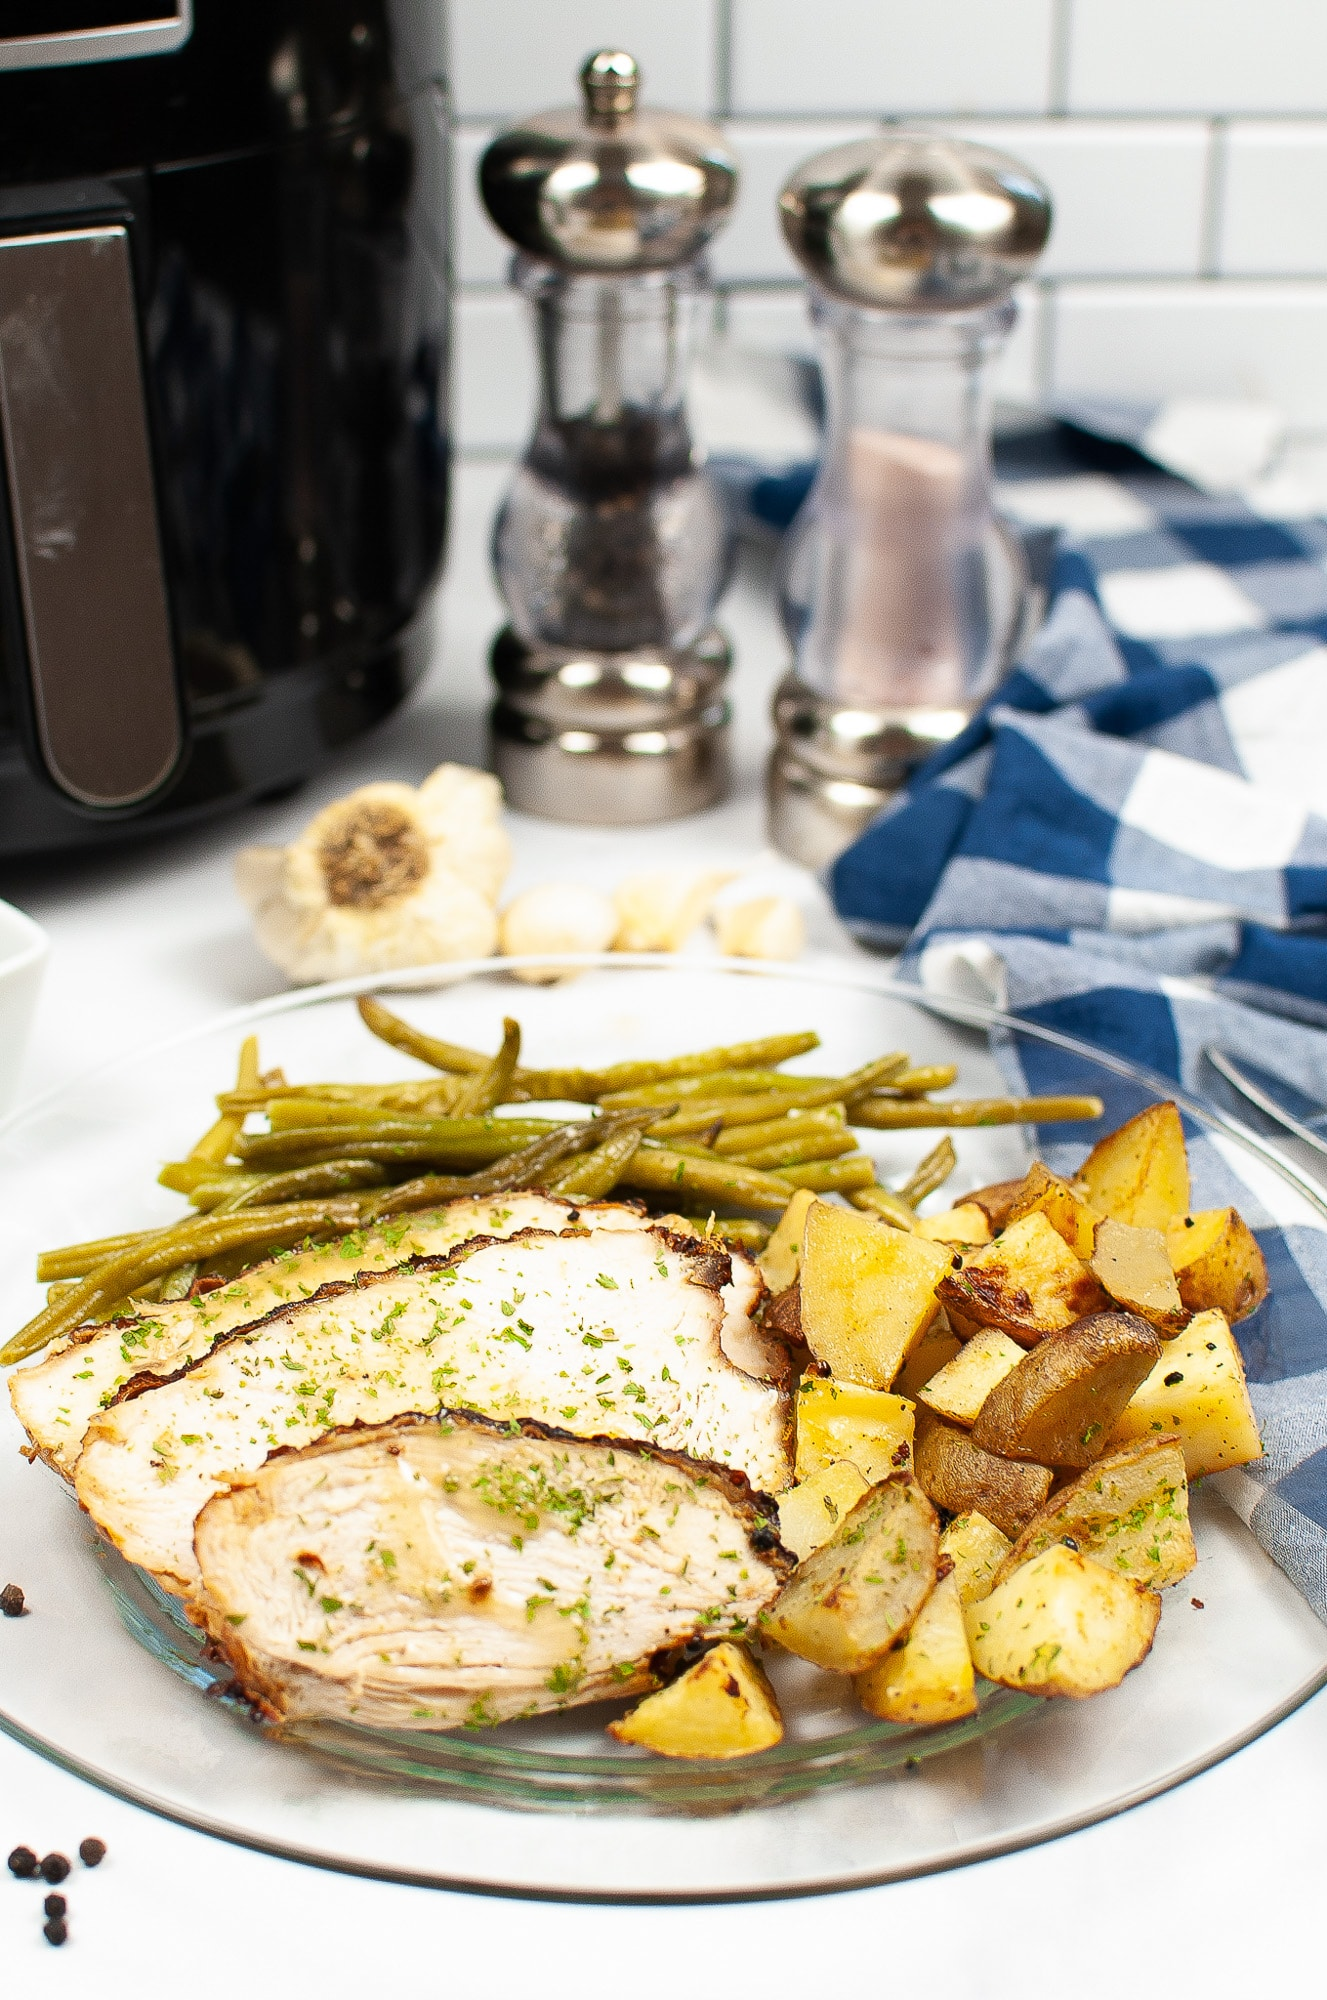 air fryer turkey breast with green beans and potatoes on white plate